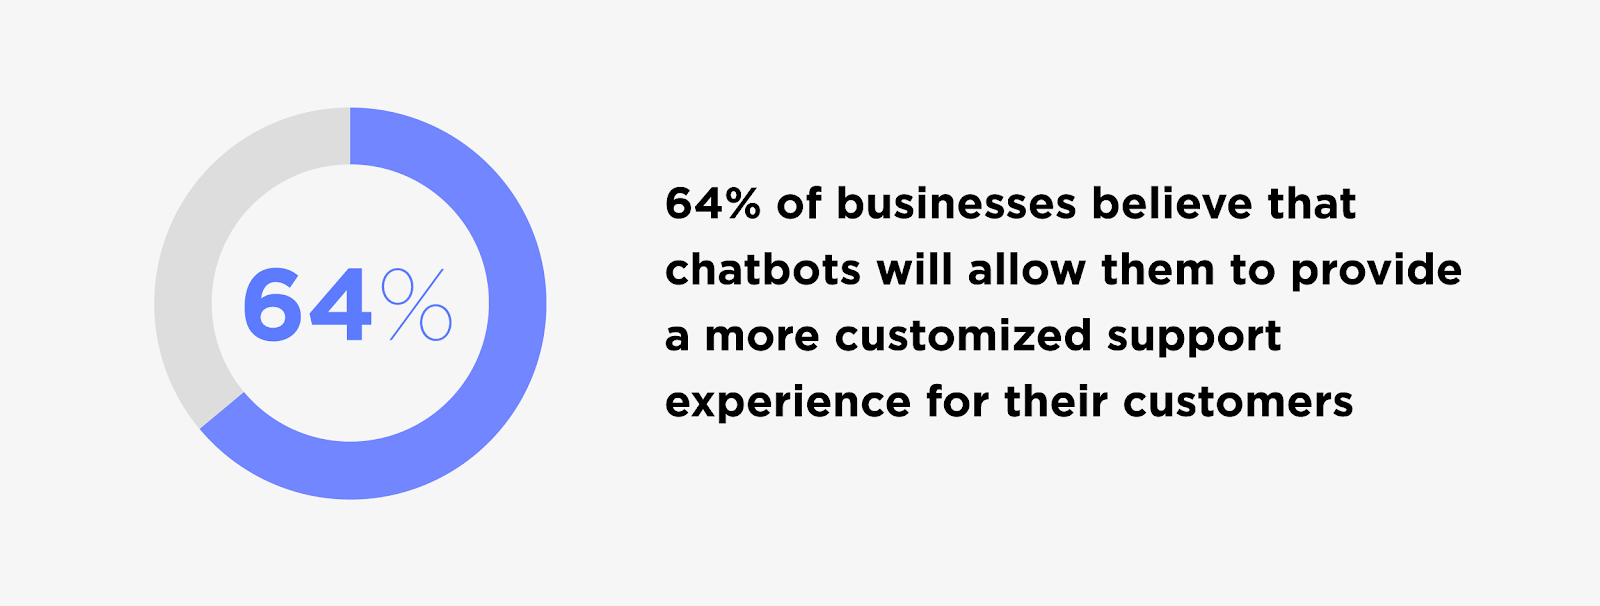 Chatbots provide more customized support